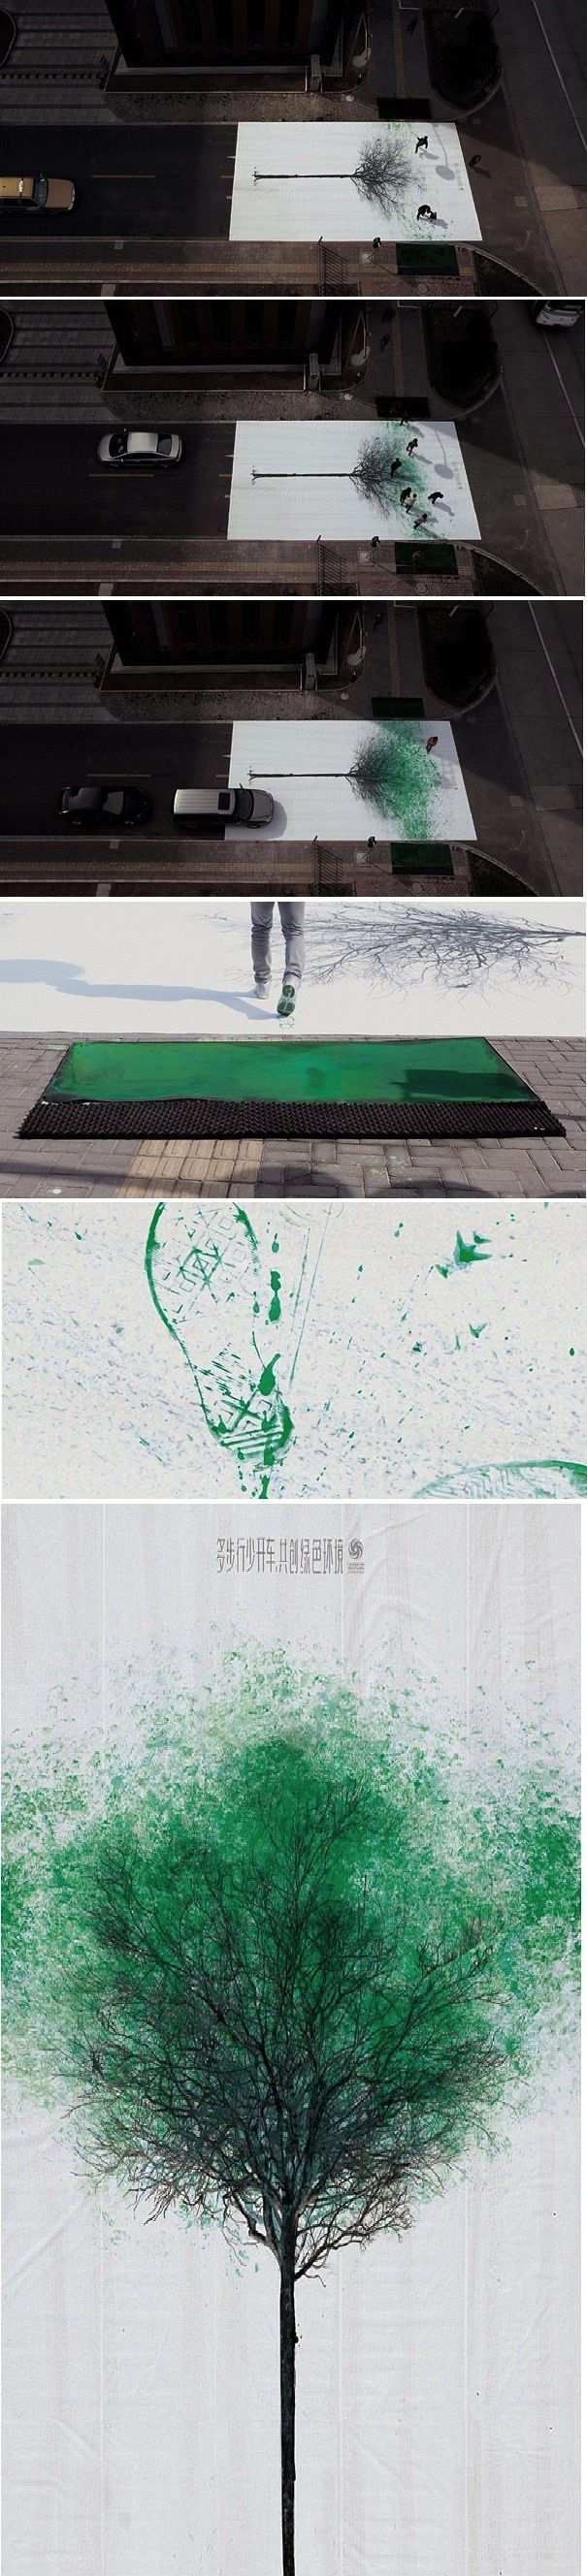 Painting a pedestrian crosswalk in China. Absolutely amazing!